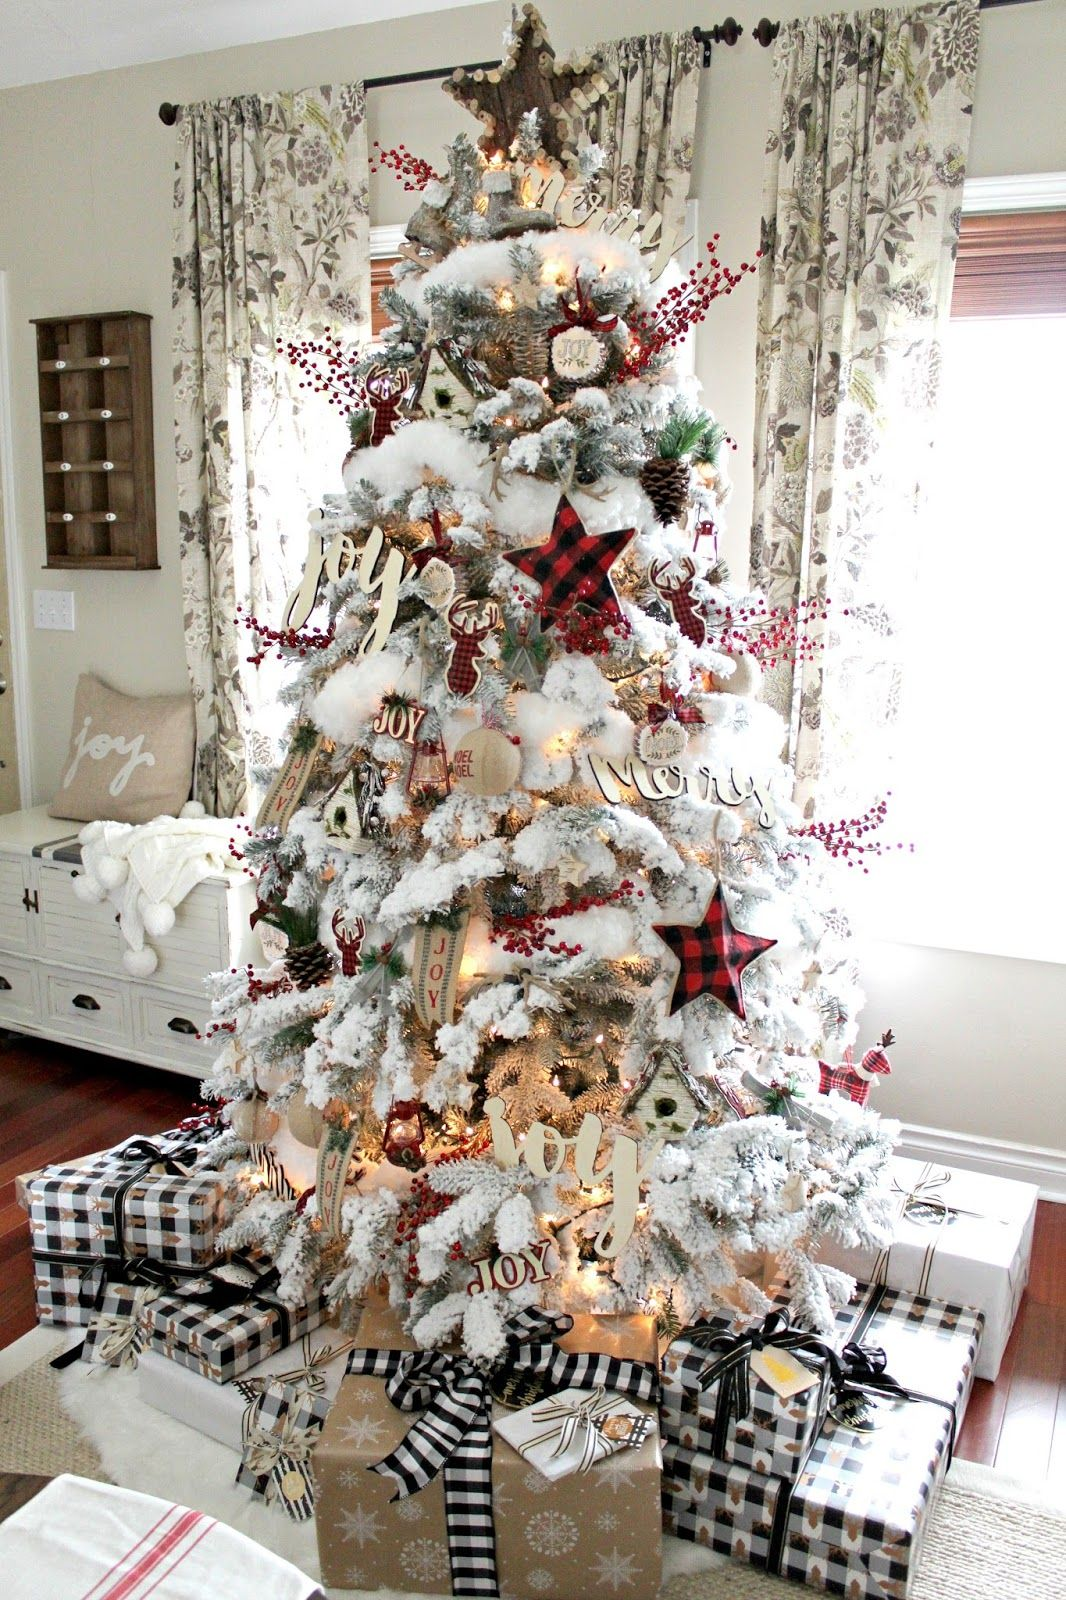 A Very Farmhouse Christmas Home Tour (With images